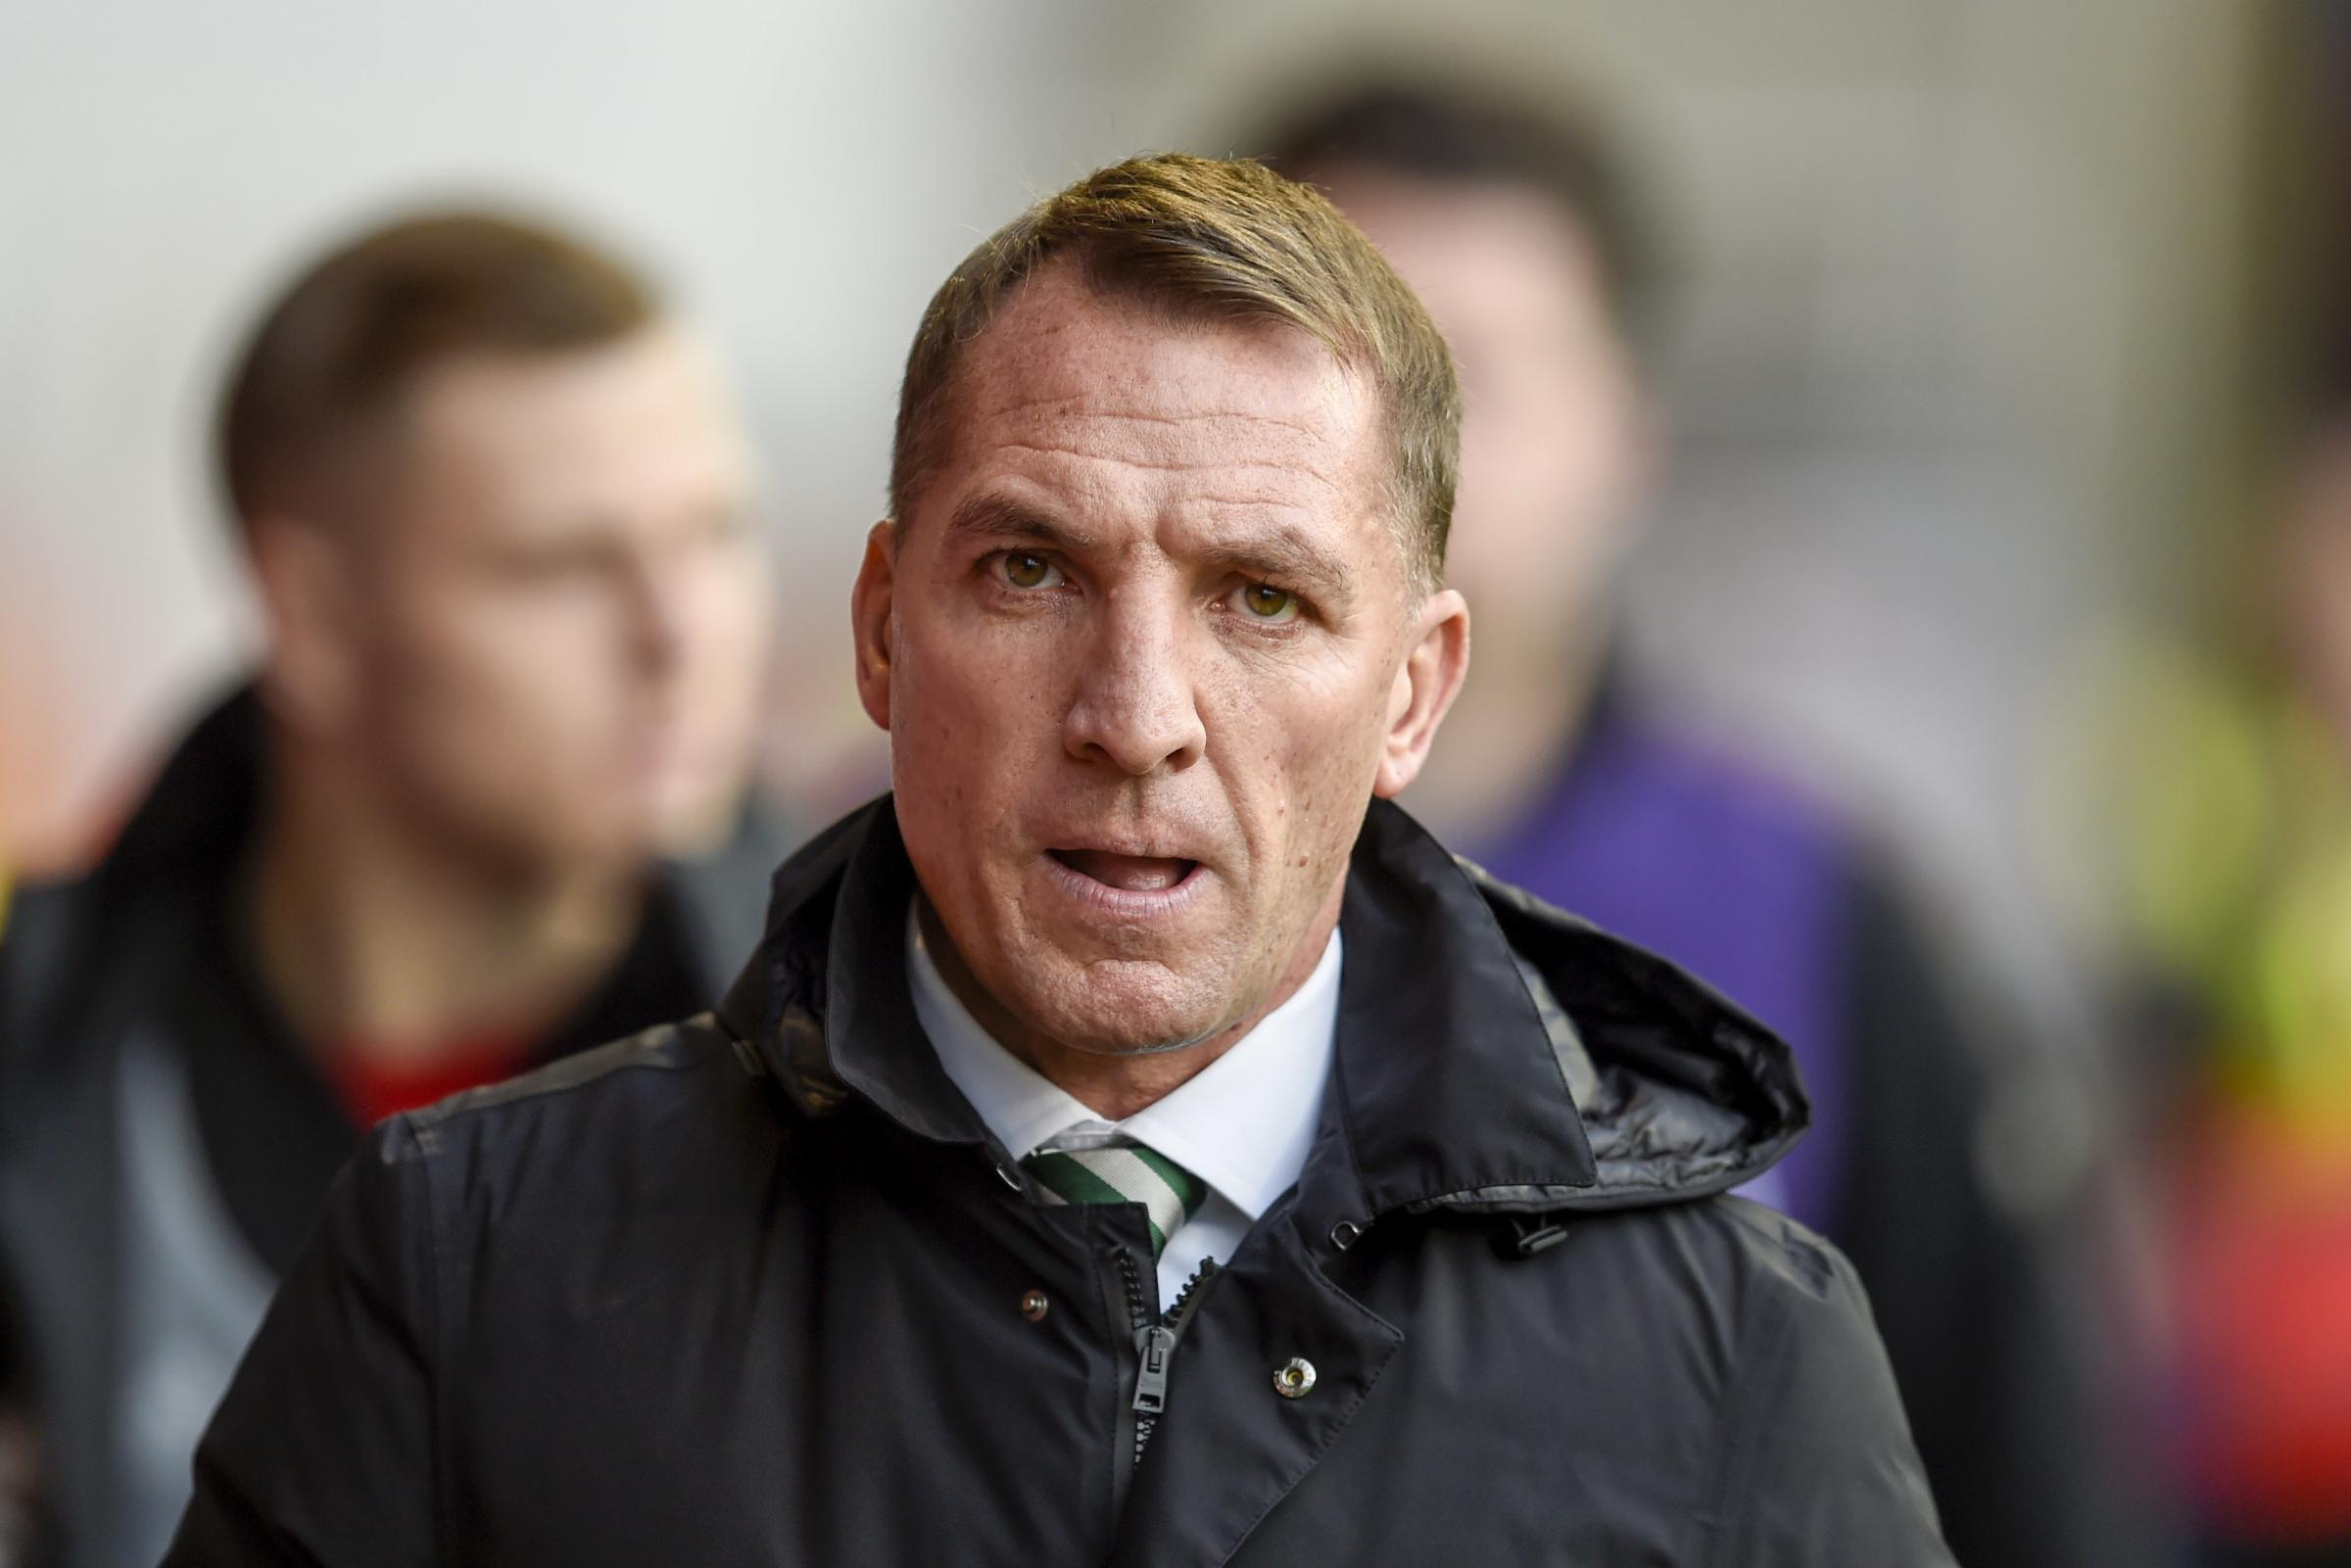 BRENDAN RODGERS INTERVIEW: Celtic manager on Rangers, John Beaton, referees and matters arising